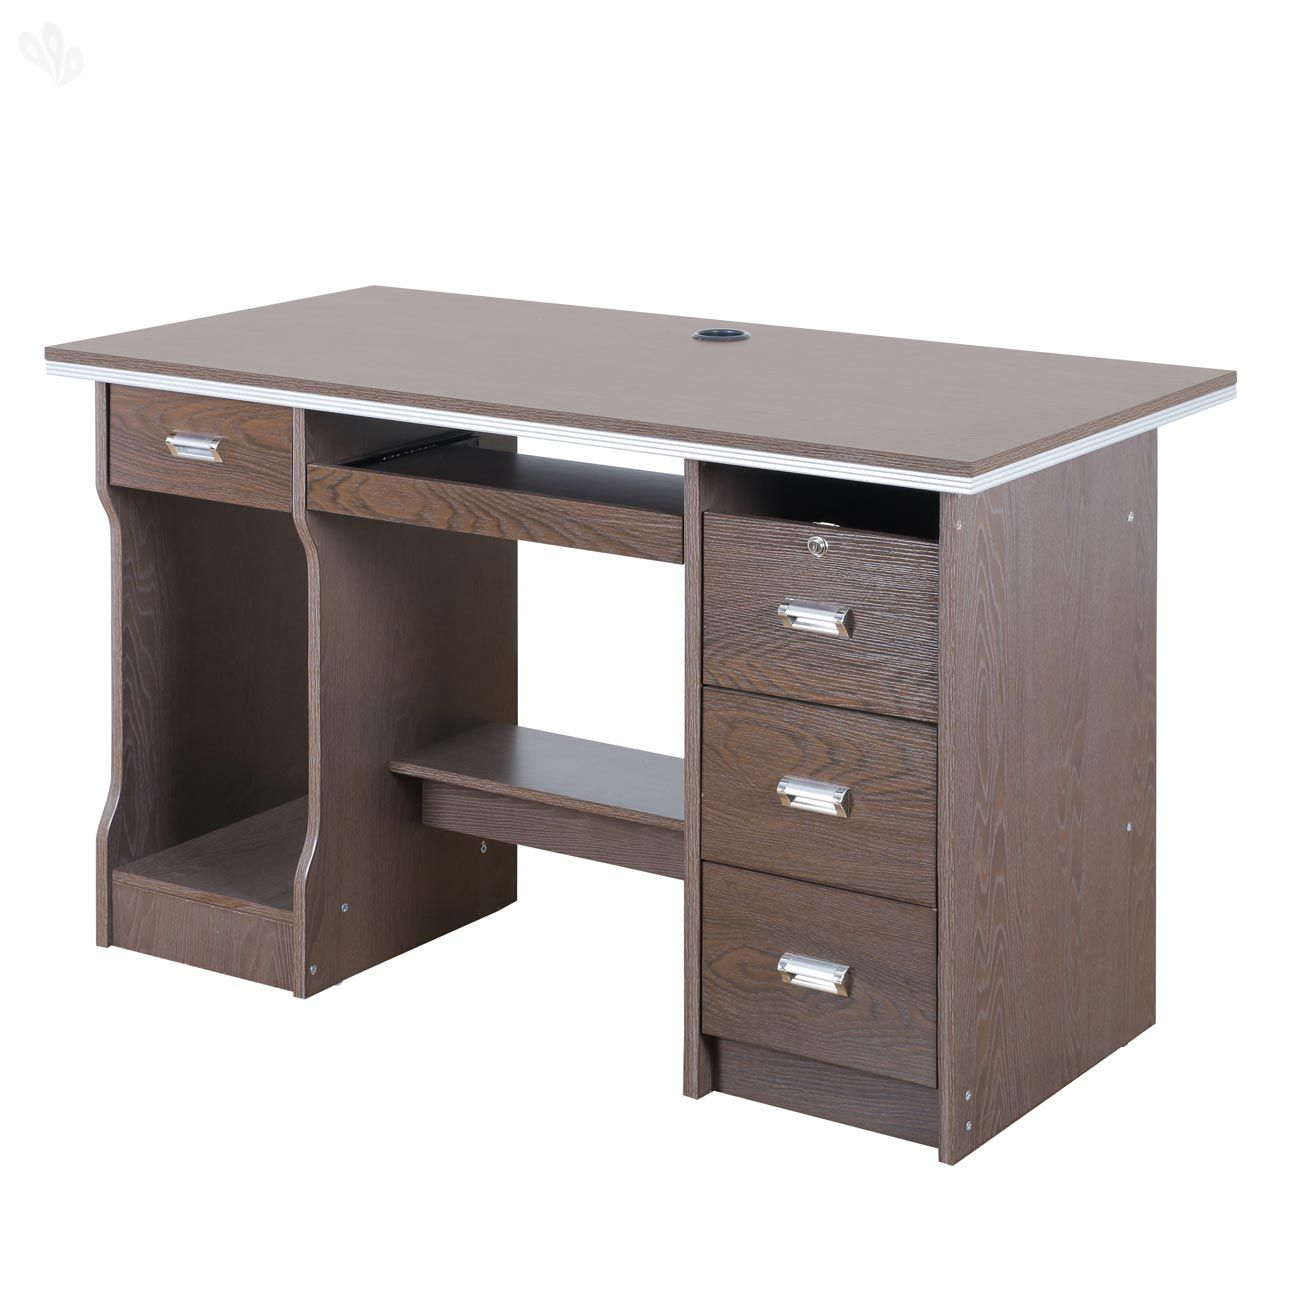 Simple office table design - Royal Oak Acacia Office Table Honey Add Oodles Of Style To Your Home With An Exciting Range Of Designer Furniture Furnishings Decor Items And